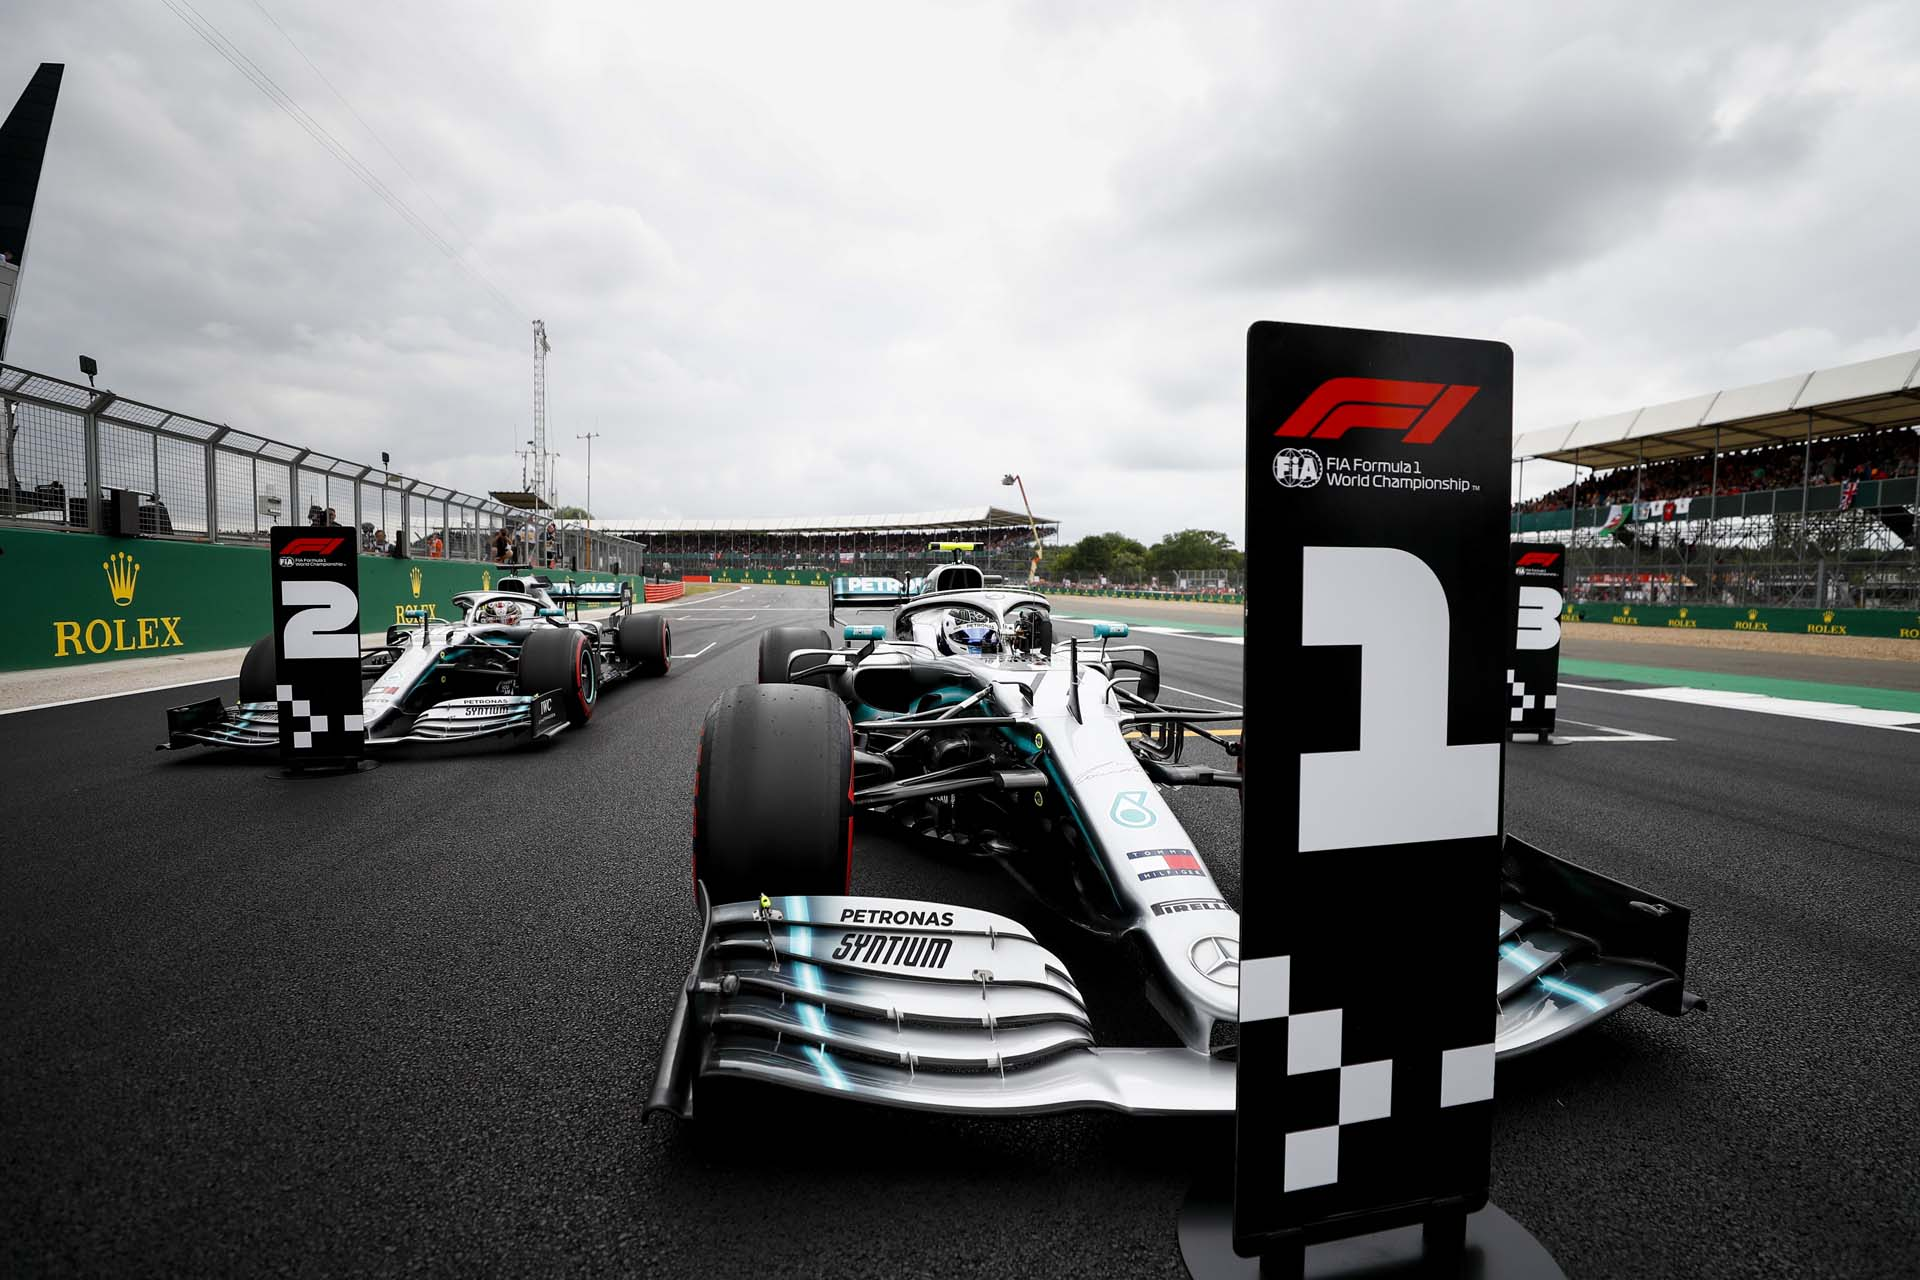 SILVERSTONE, UNITED KINGDOM - JULY 13: Pole Sitter Valtteri Bottas, Mercedes AMG W10 and Lewis Hamilton, Mercedes AMG F1 W10 drive into Parc Ferme during the British GP at Silverstone on July 13, 2019 in Silverstone, United Kingdom. (Photo by Glenn Dunbar / LAT Images)